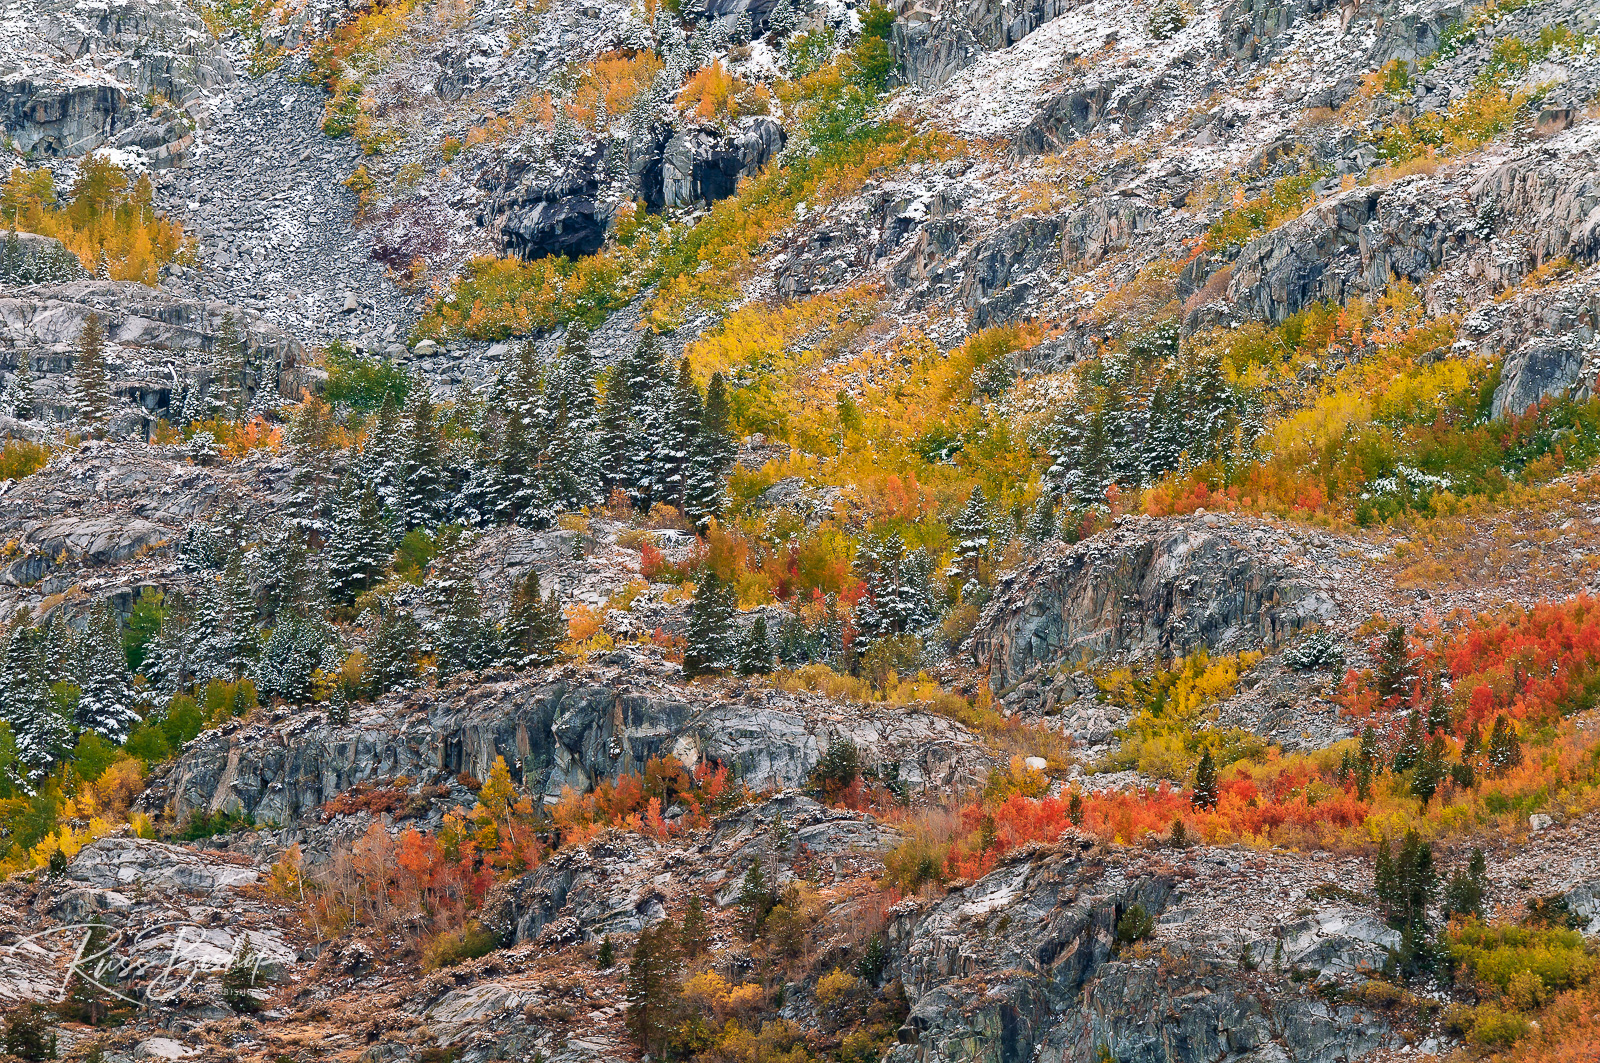 Autumn hues and fresh powder, John Muir Wilderness, California